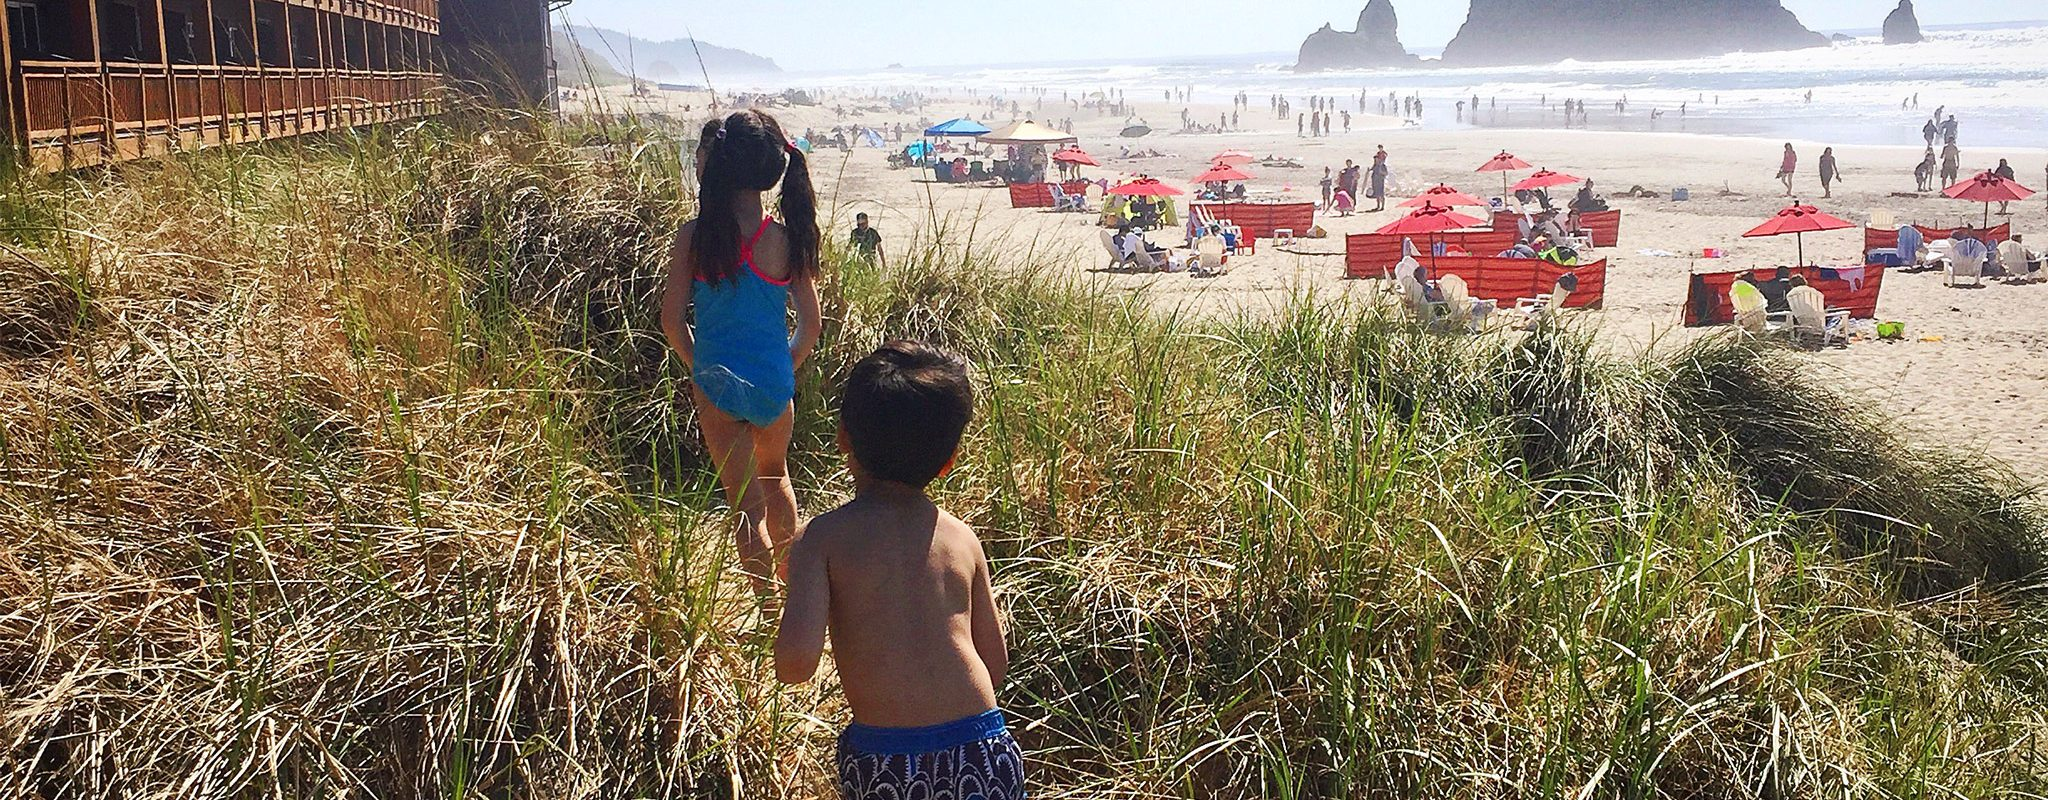 Kids playing in the dunes at Cannon Beach.